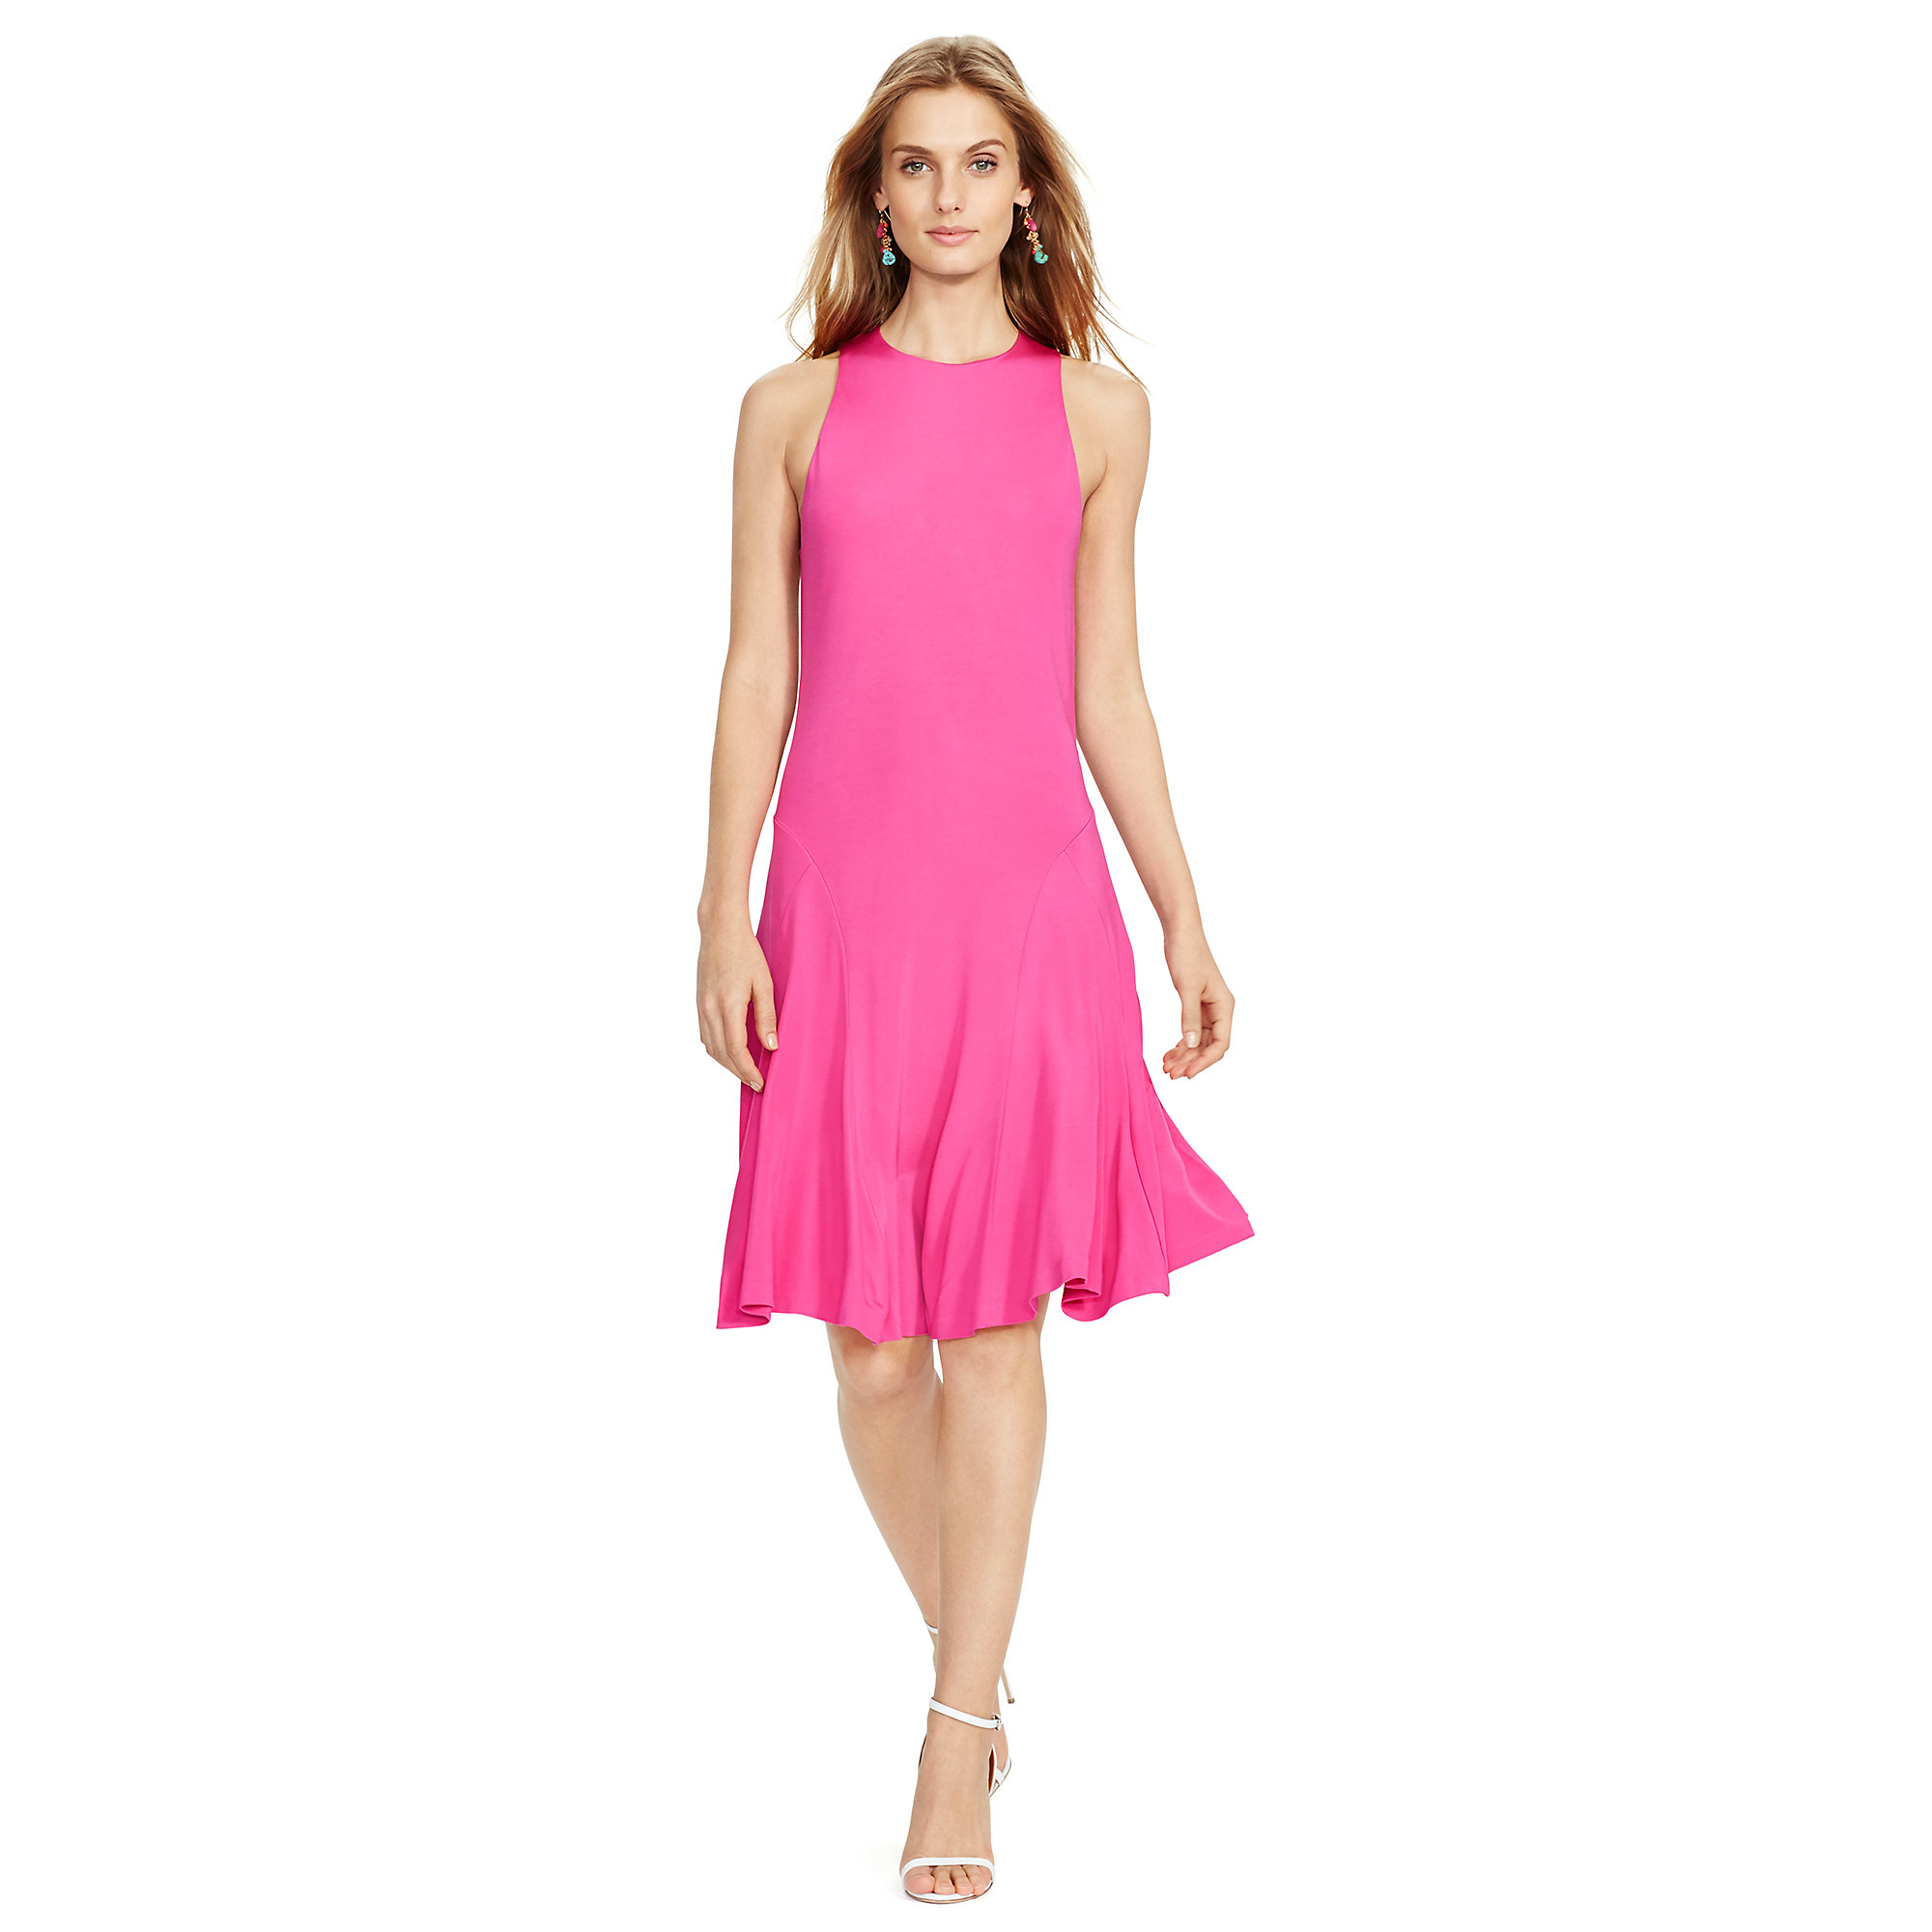 Ralph Lauren Plus Size Dresses At Macys